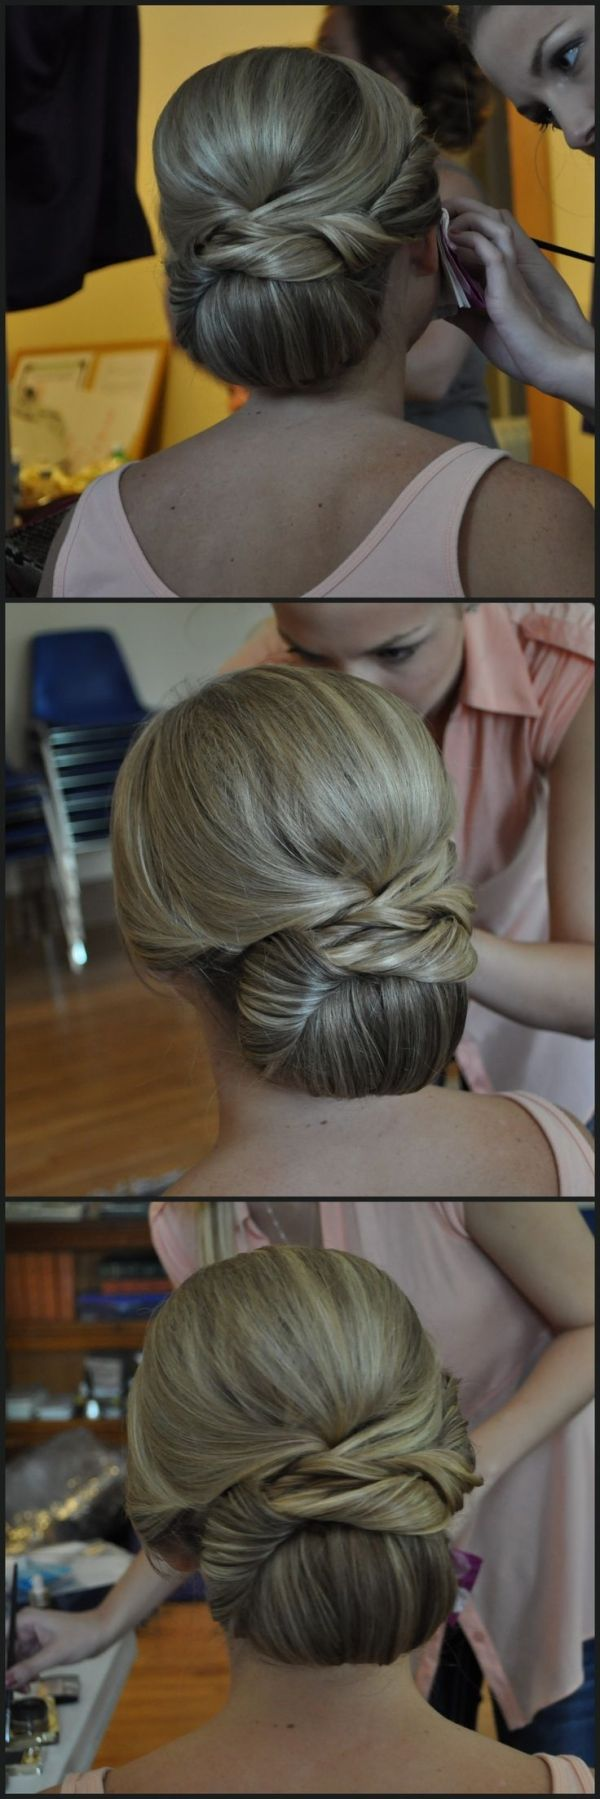 A classic bridal updo. Low chignon with intricate details to create texture and interest. Follow the link for more wedding hair ideas. by heather